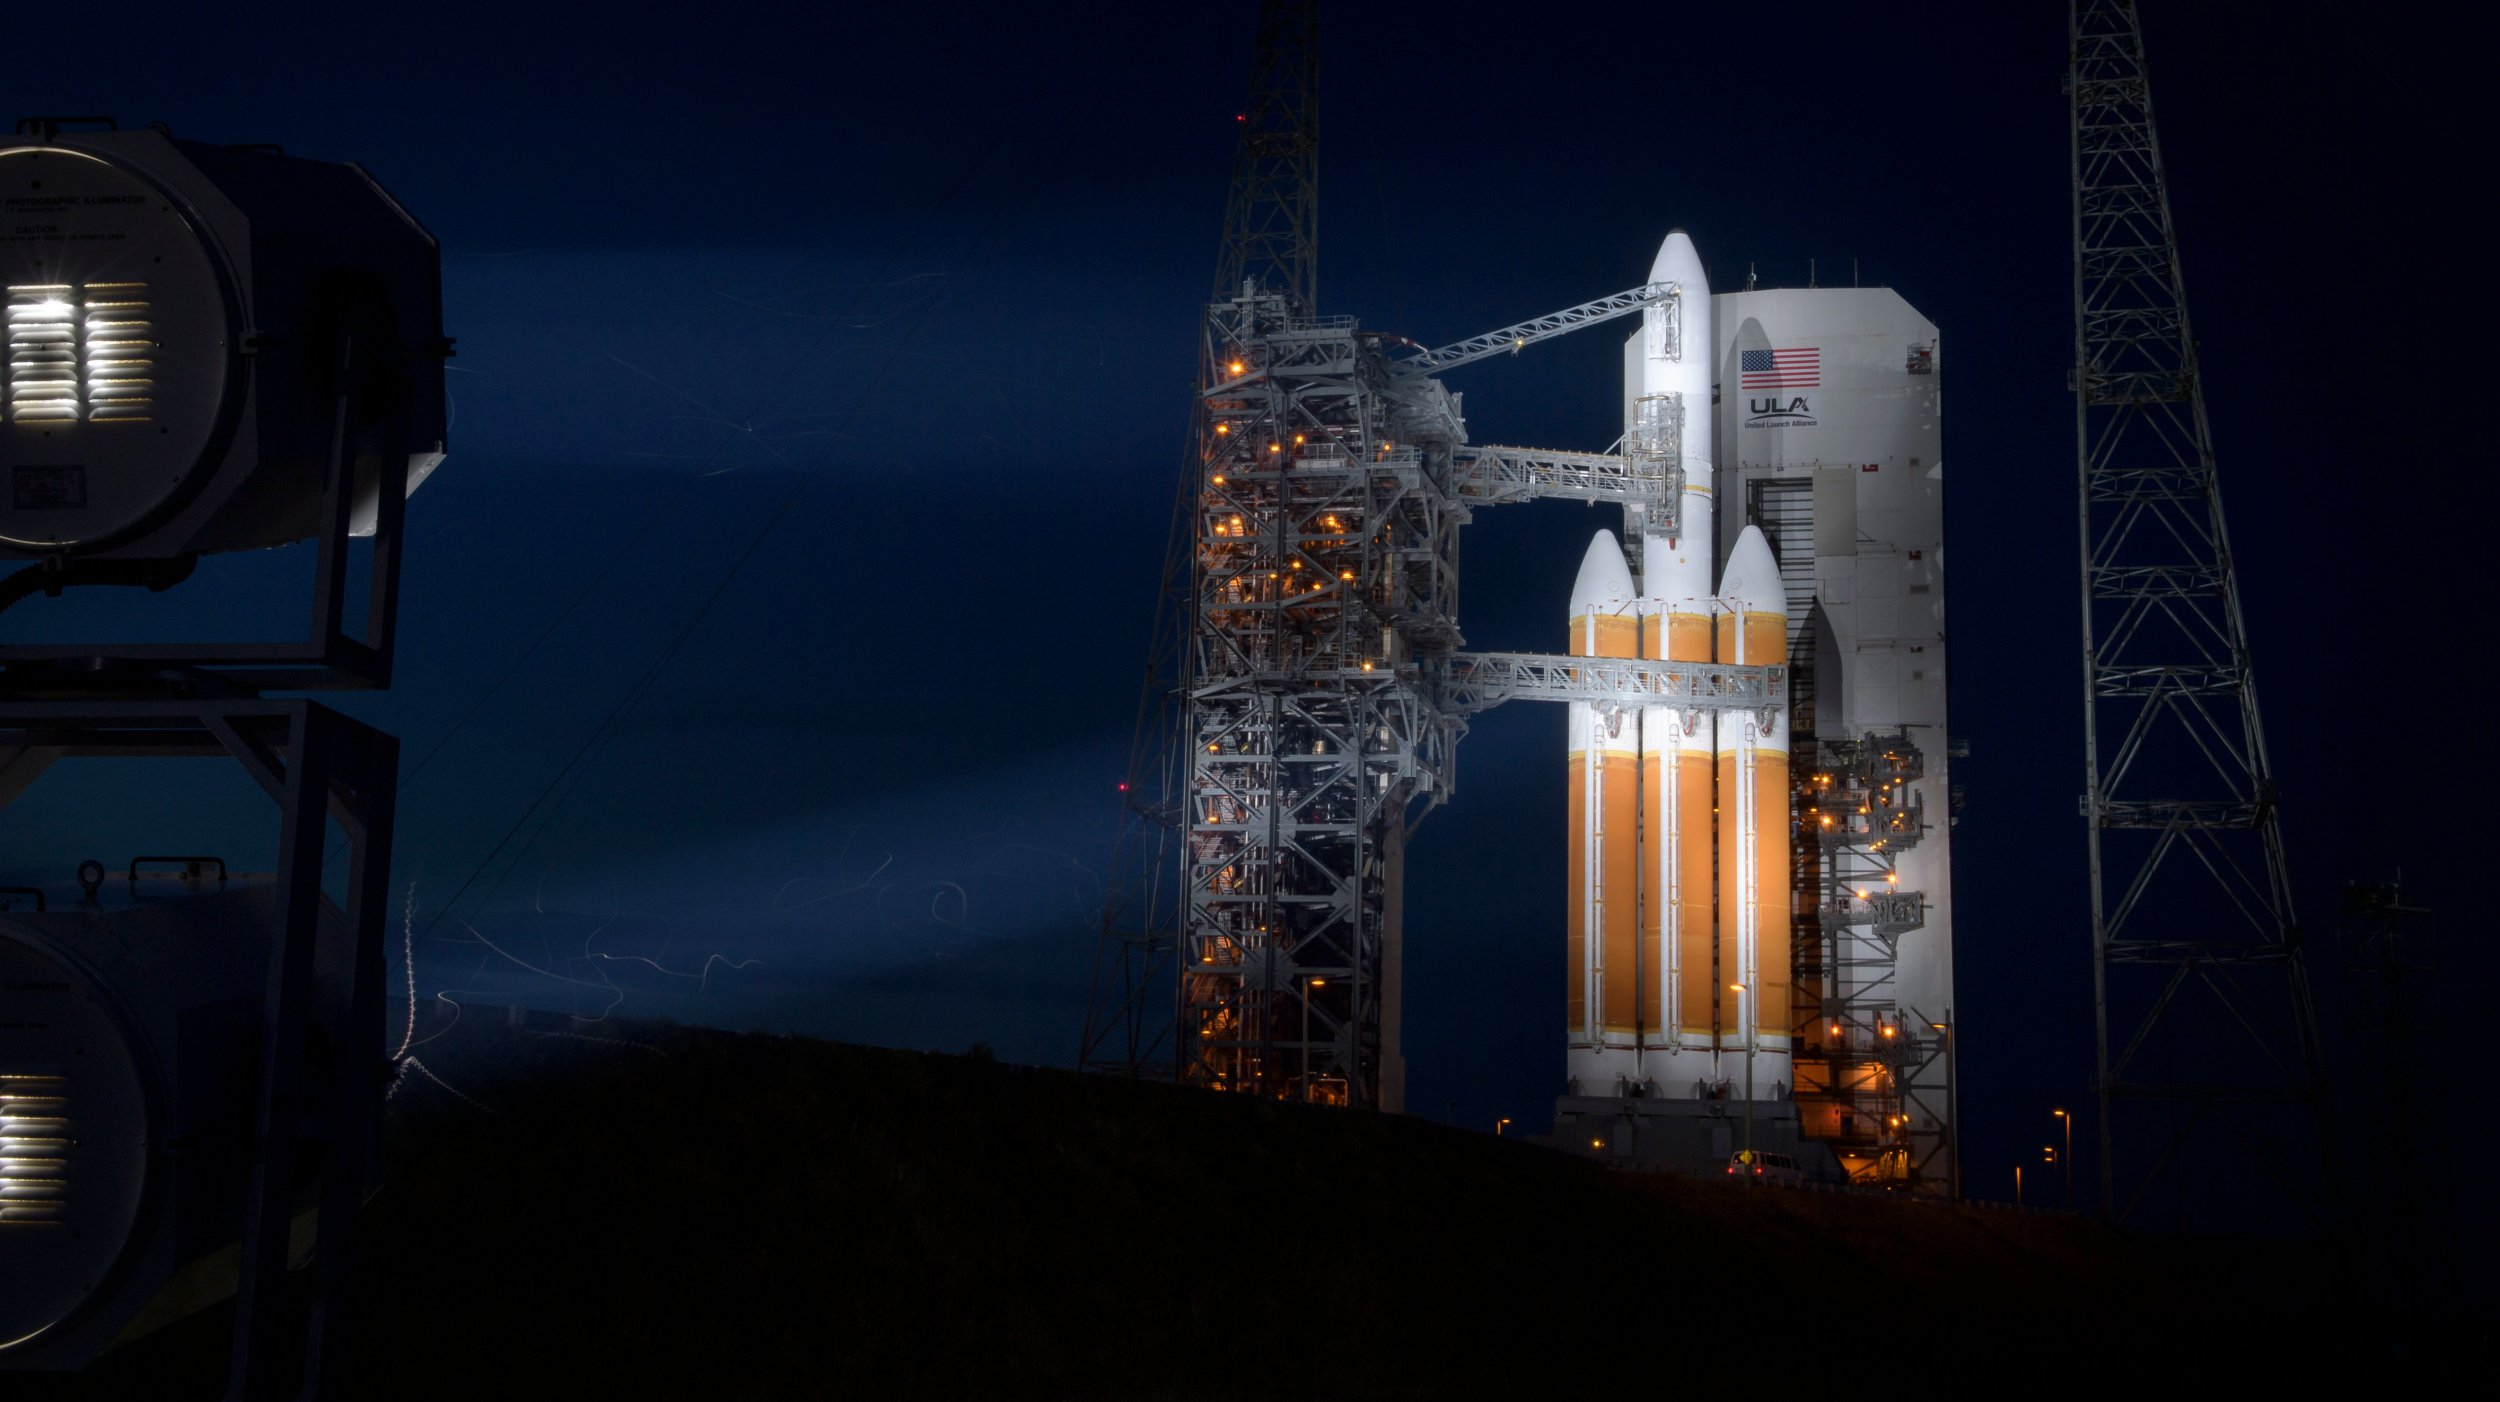 """This handout photo released by NASA shows the United Launch Alliance Delta IV Heavy rocket with the Parker Solar Probe onboard shortly after the Mobile Service Tower was rolled back on August 10, 2018, Launch Complex 37 at Cape Canaveral Air Force Station in Florida. - NASA counted down on August 10 to the launch of a $1.5 billion spacecraft that aims to plunge into the Sun's sizzling atmosphere and become humanity's first mission to explore a star. The car-sized Parker Solar Probe is scheduled to blast off on a Delta IV Heavy rocket from Cape Canaveral, Florida early on August 11. (Photo by Bill INGALLS / NASA / AFP) / RESTRICTED TO EDITORIAL USE - MANDATORY CREDIT """"AFP PHOTO / NASA / BILL INGALLS """" - NO MARKETING NO ADVERTISING CAMPAIGNS - DISTRIBUTED AS A SERVICE TO CLIENTSBILL INGALLS/AFP/Getty Images"""